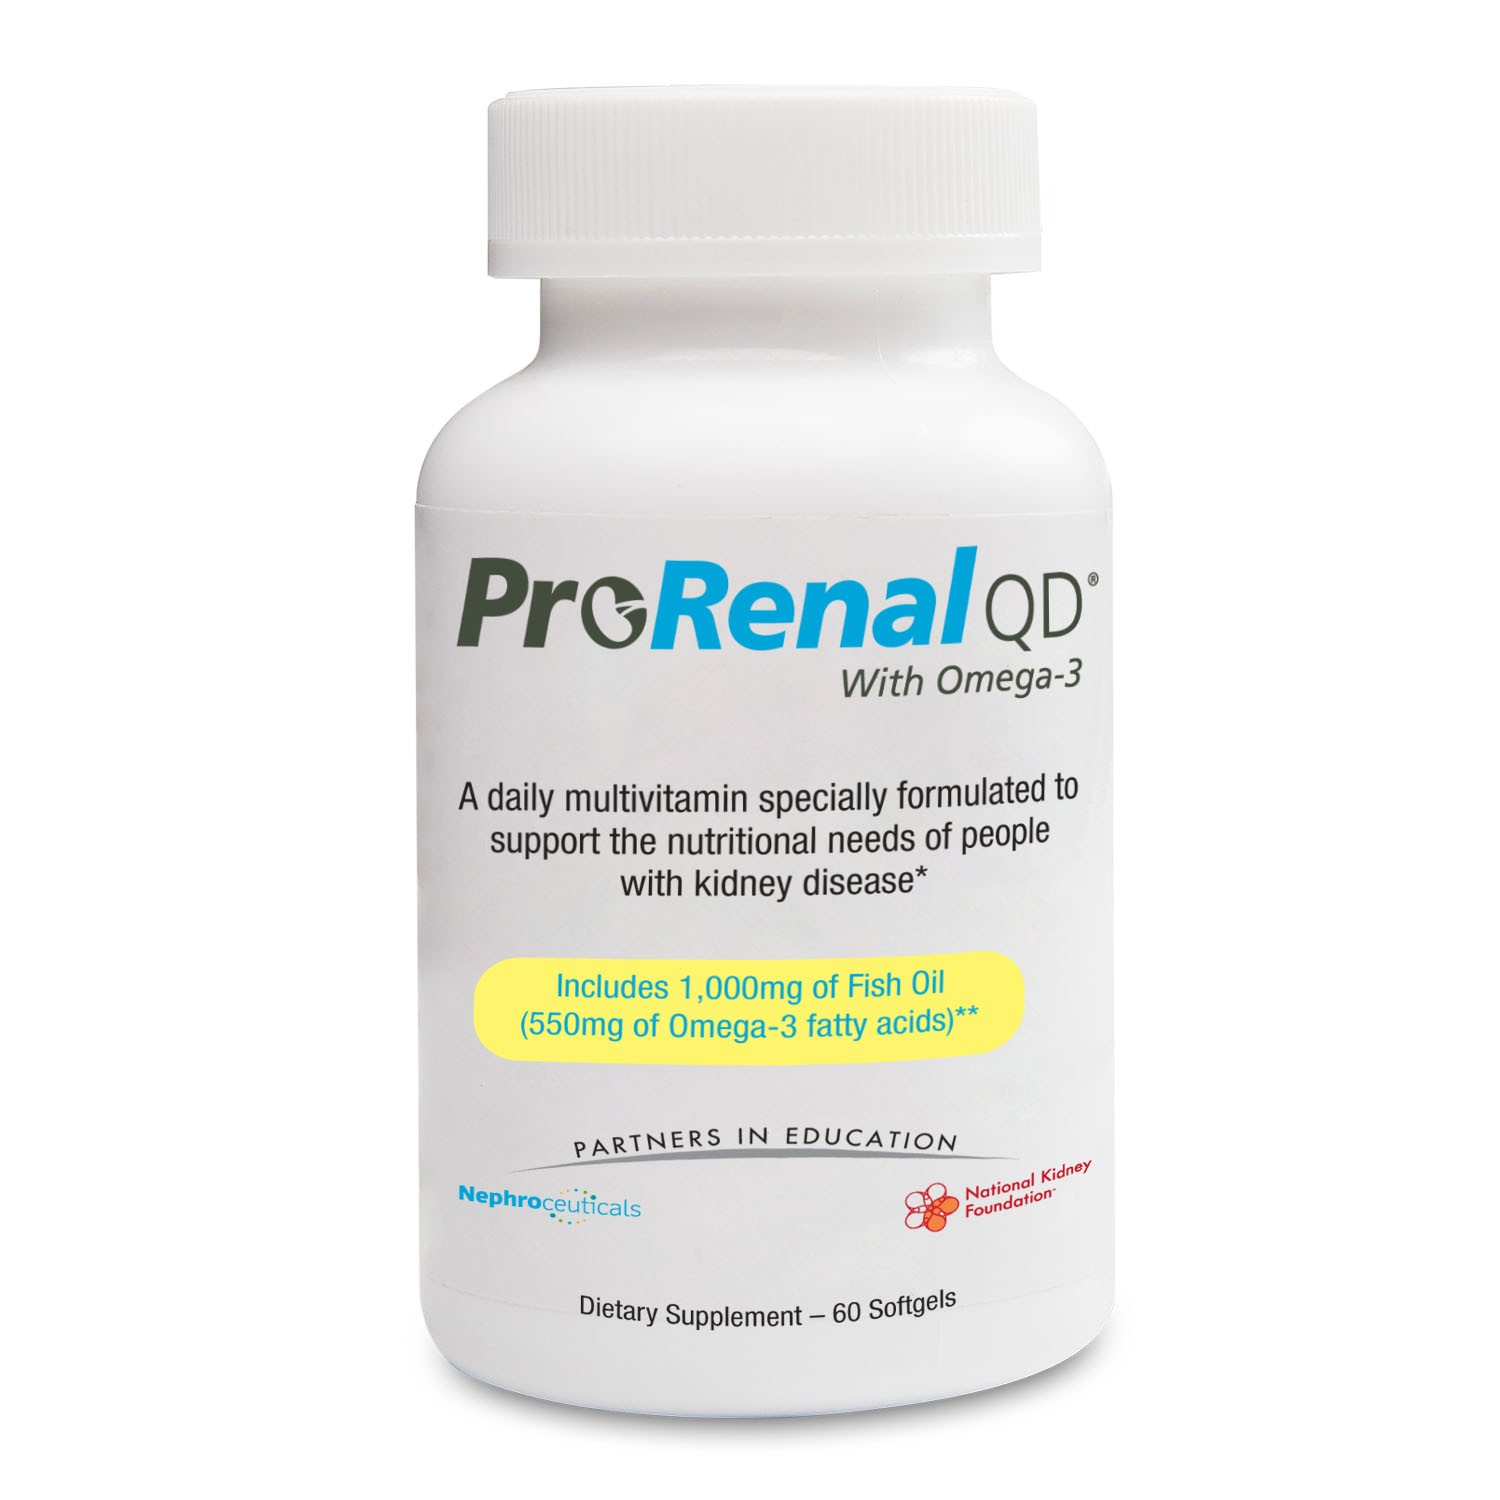 Prorenal QD Dietary Supplement - 30 Tablets